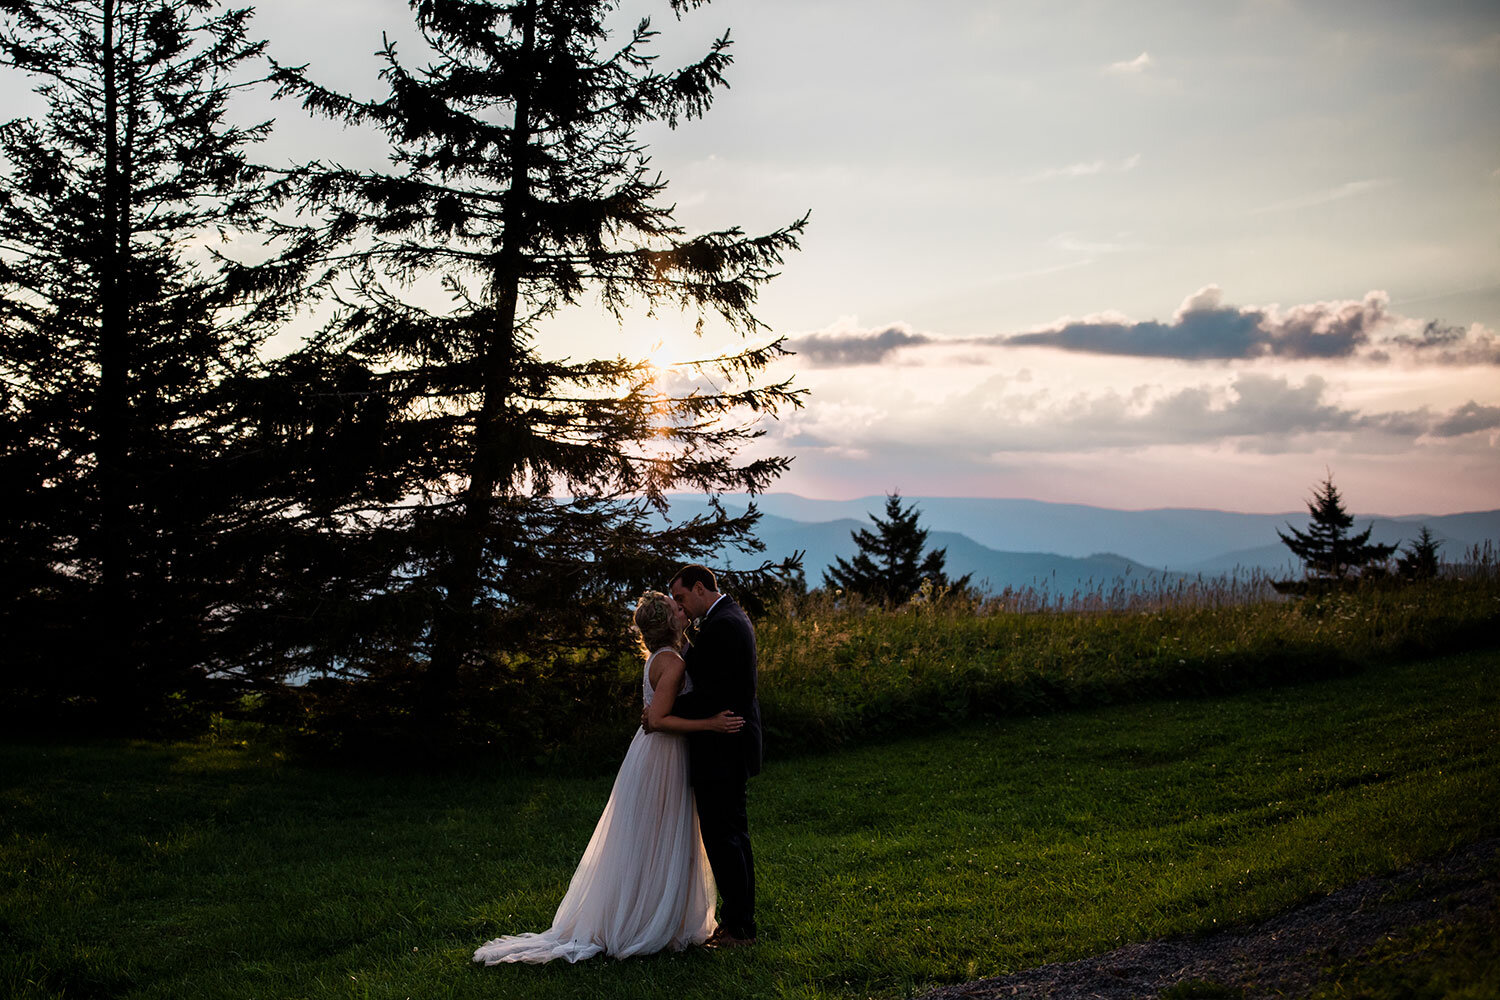 A night portrait after a recent wedding at Snowshoe Resort.